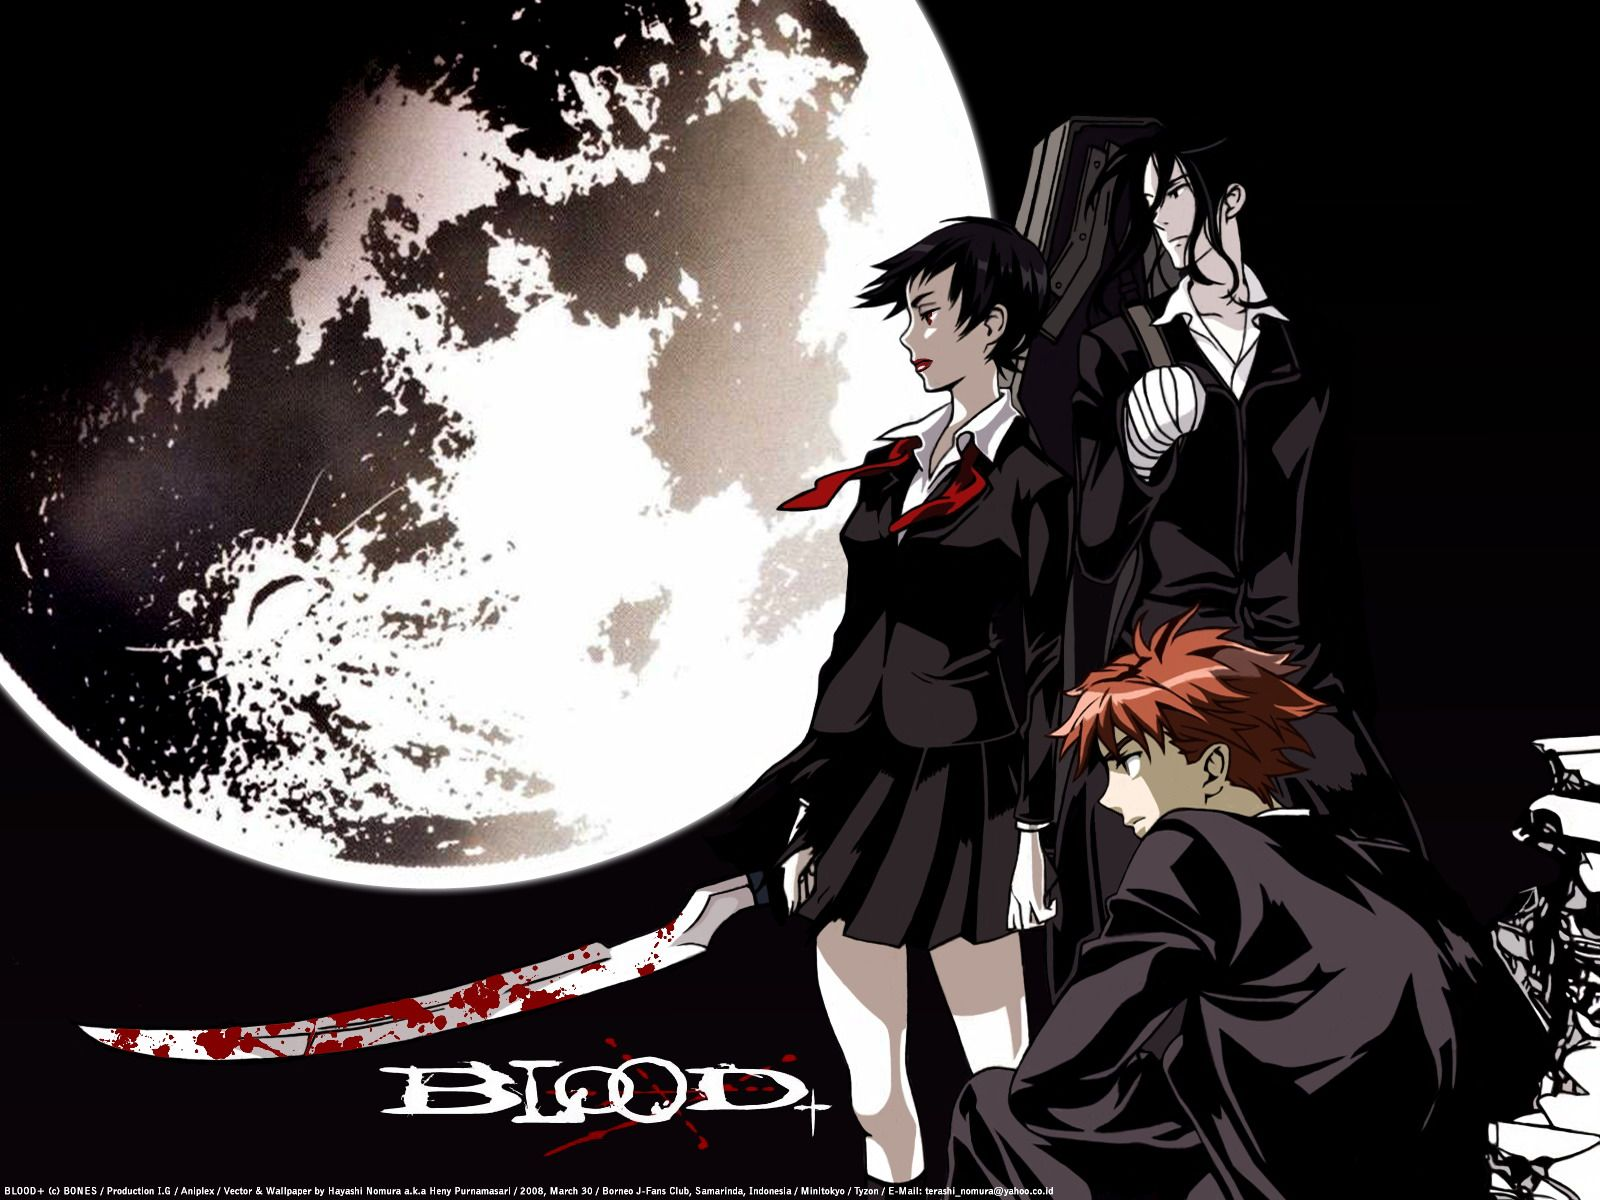 Blood Anime Wallpapers Top Free Blood Anime Backgrounds